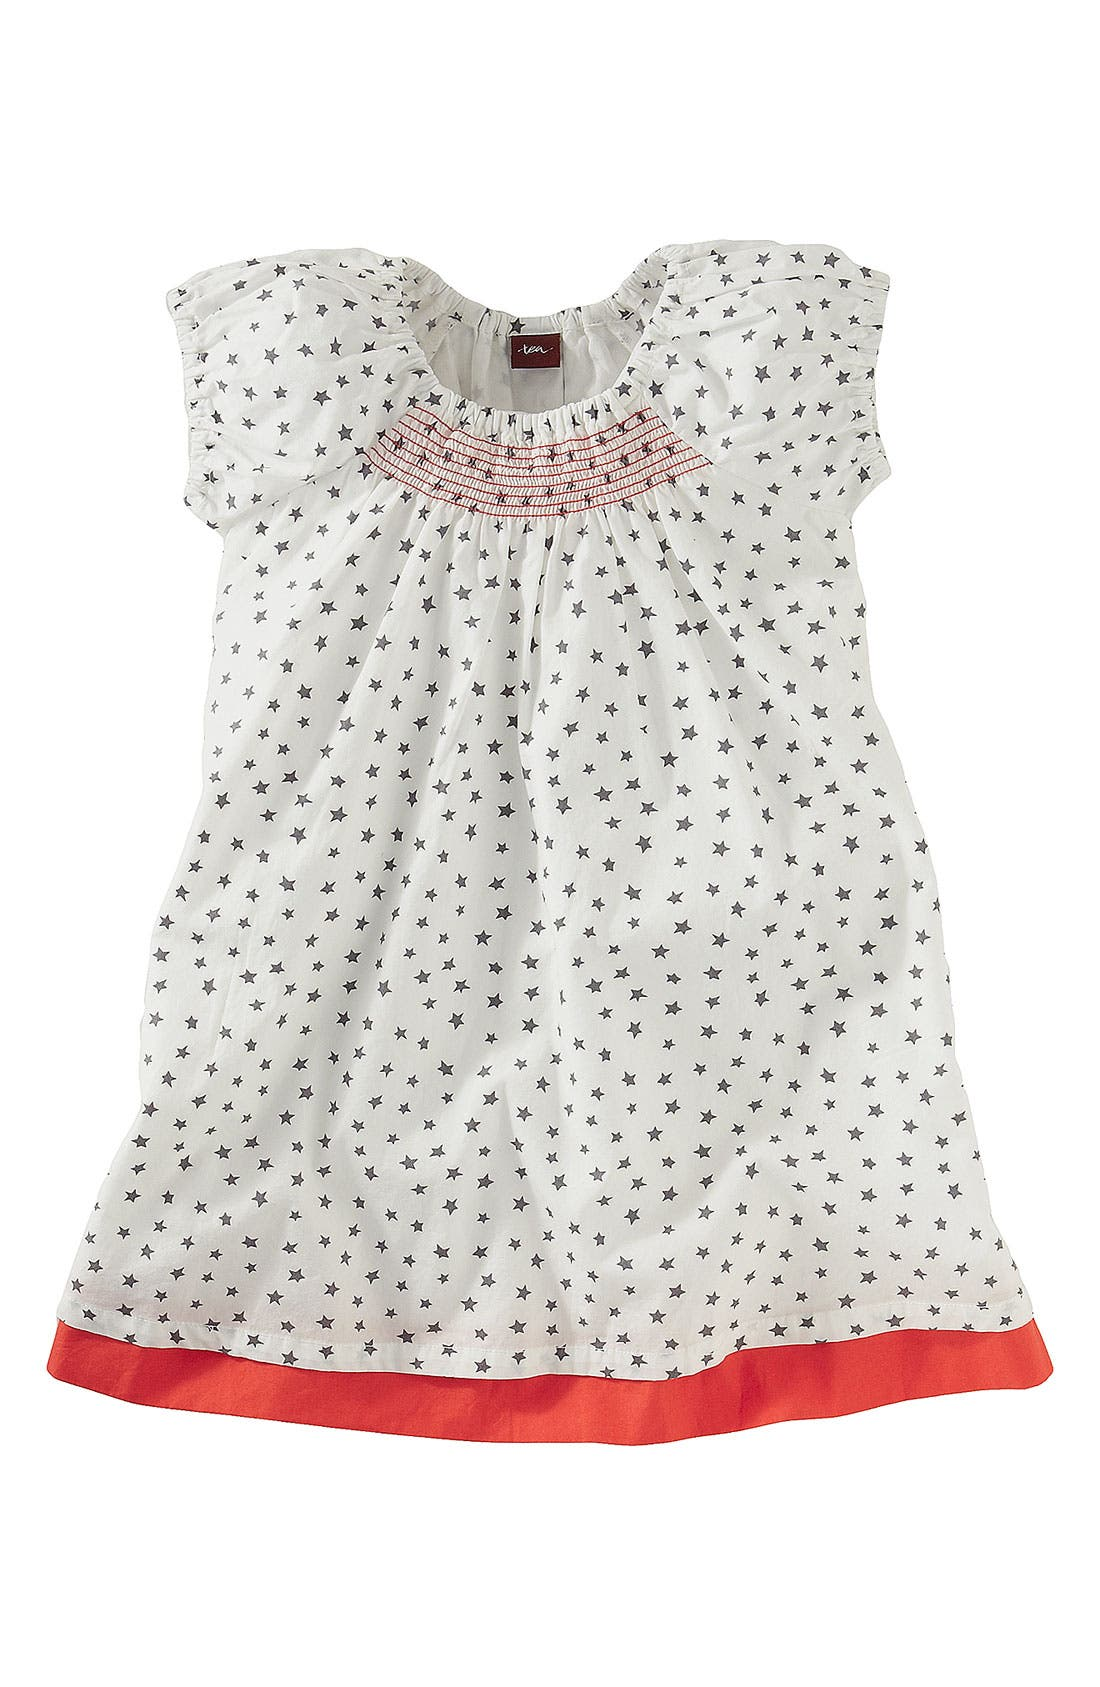 Main Image - Tea Collection Smocked Dress (Toddler)